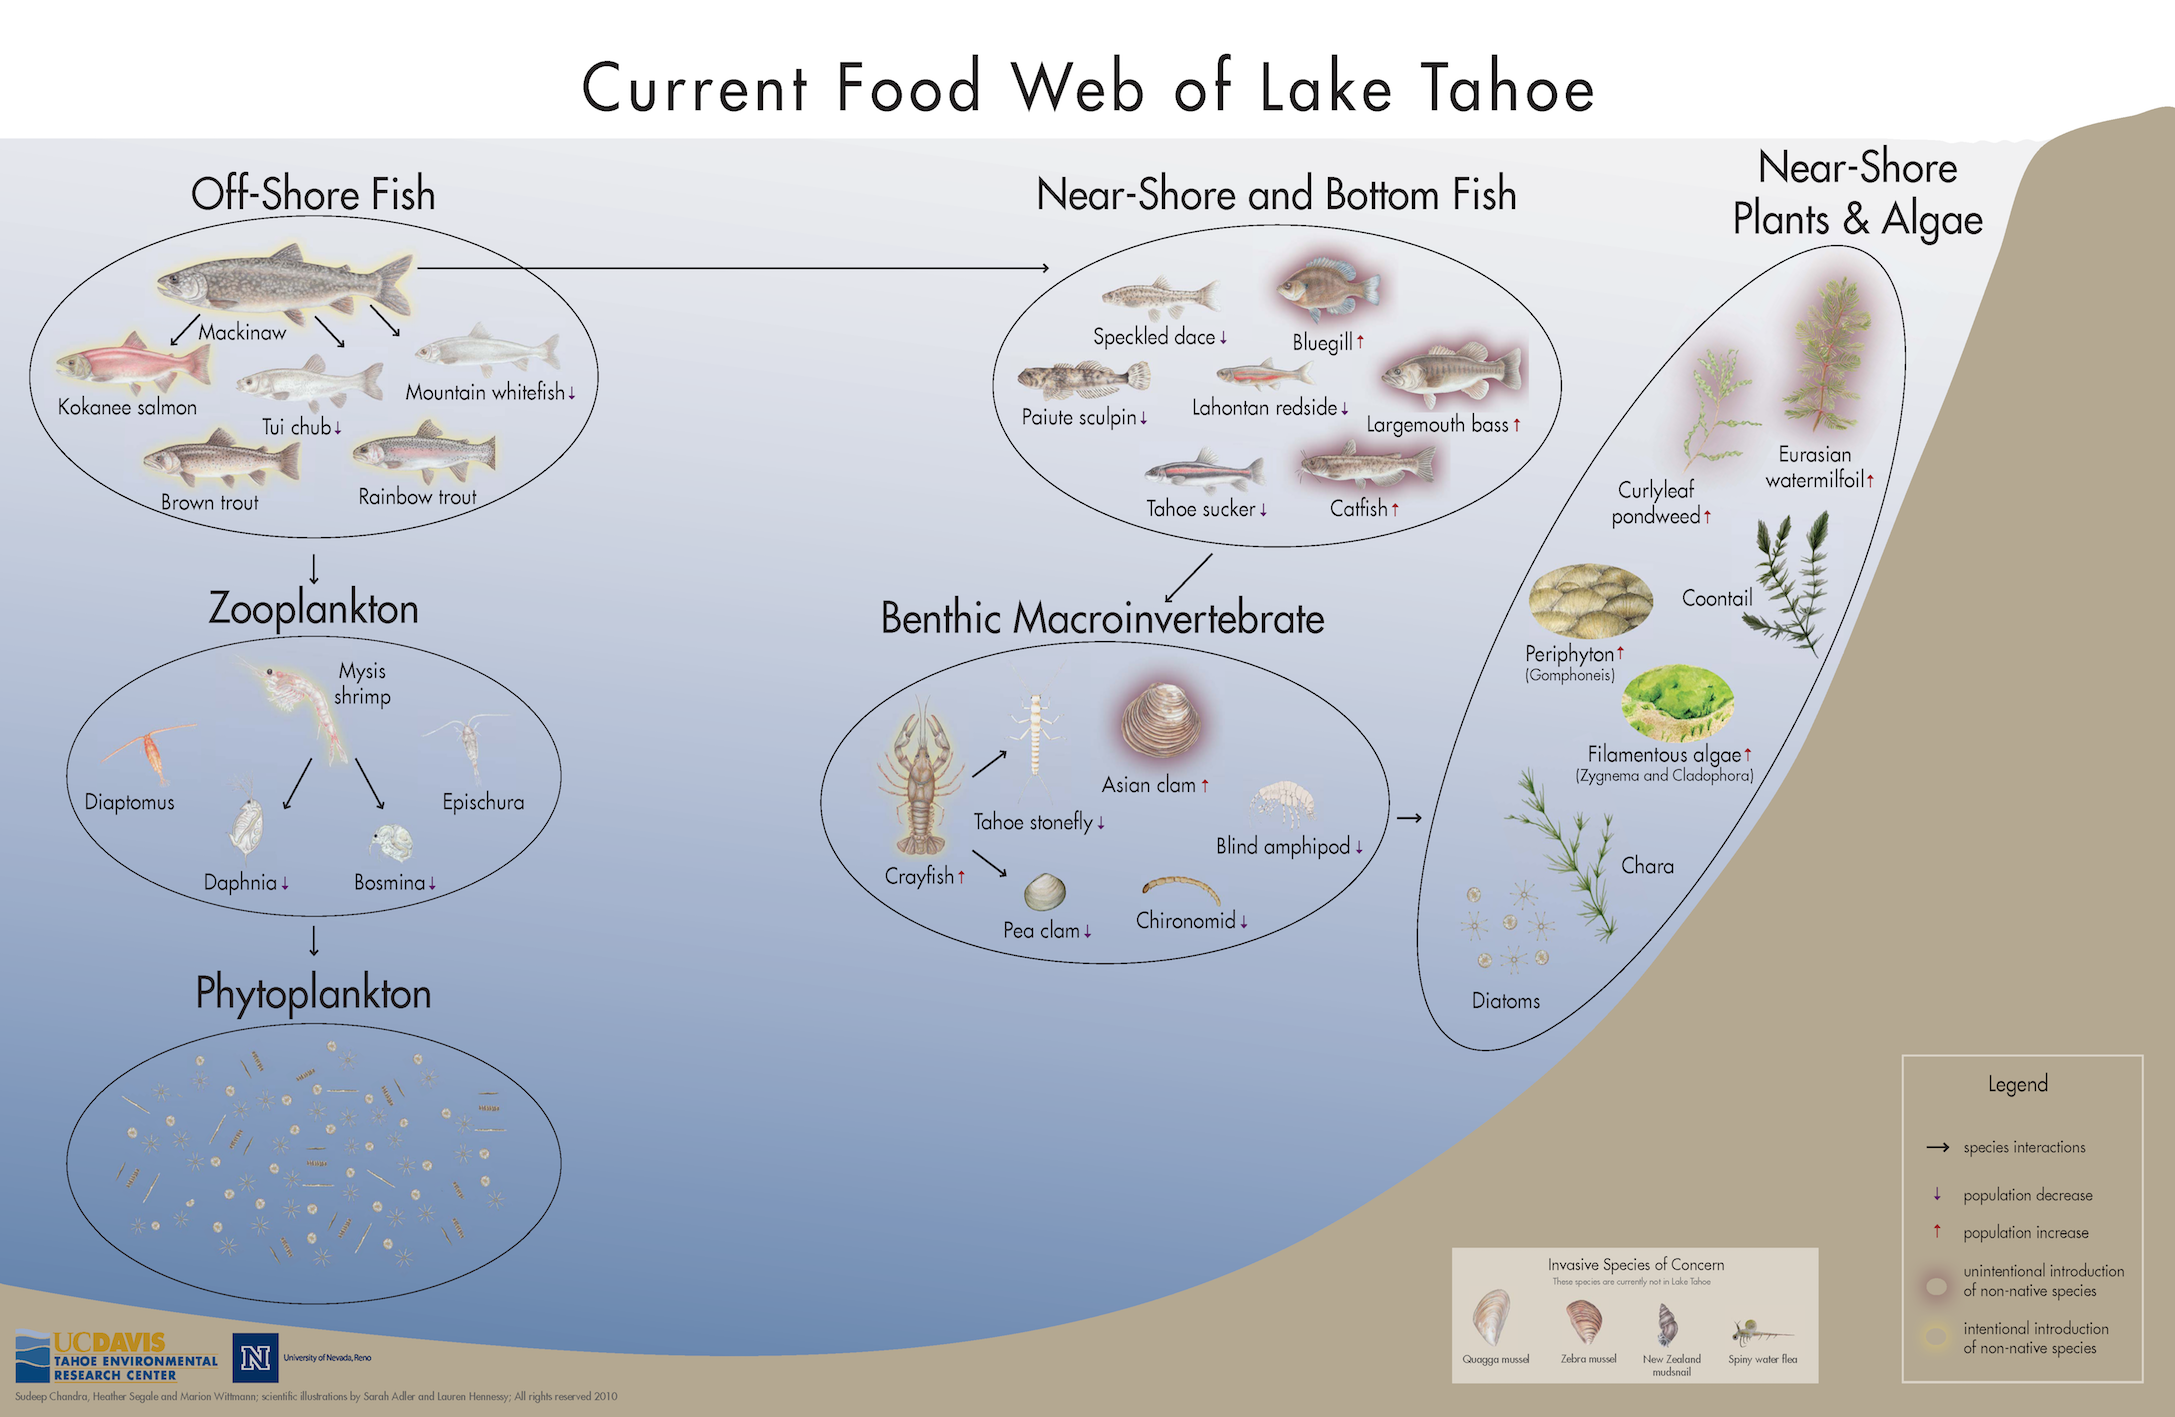 Lake Tahoe Current Foodweb